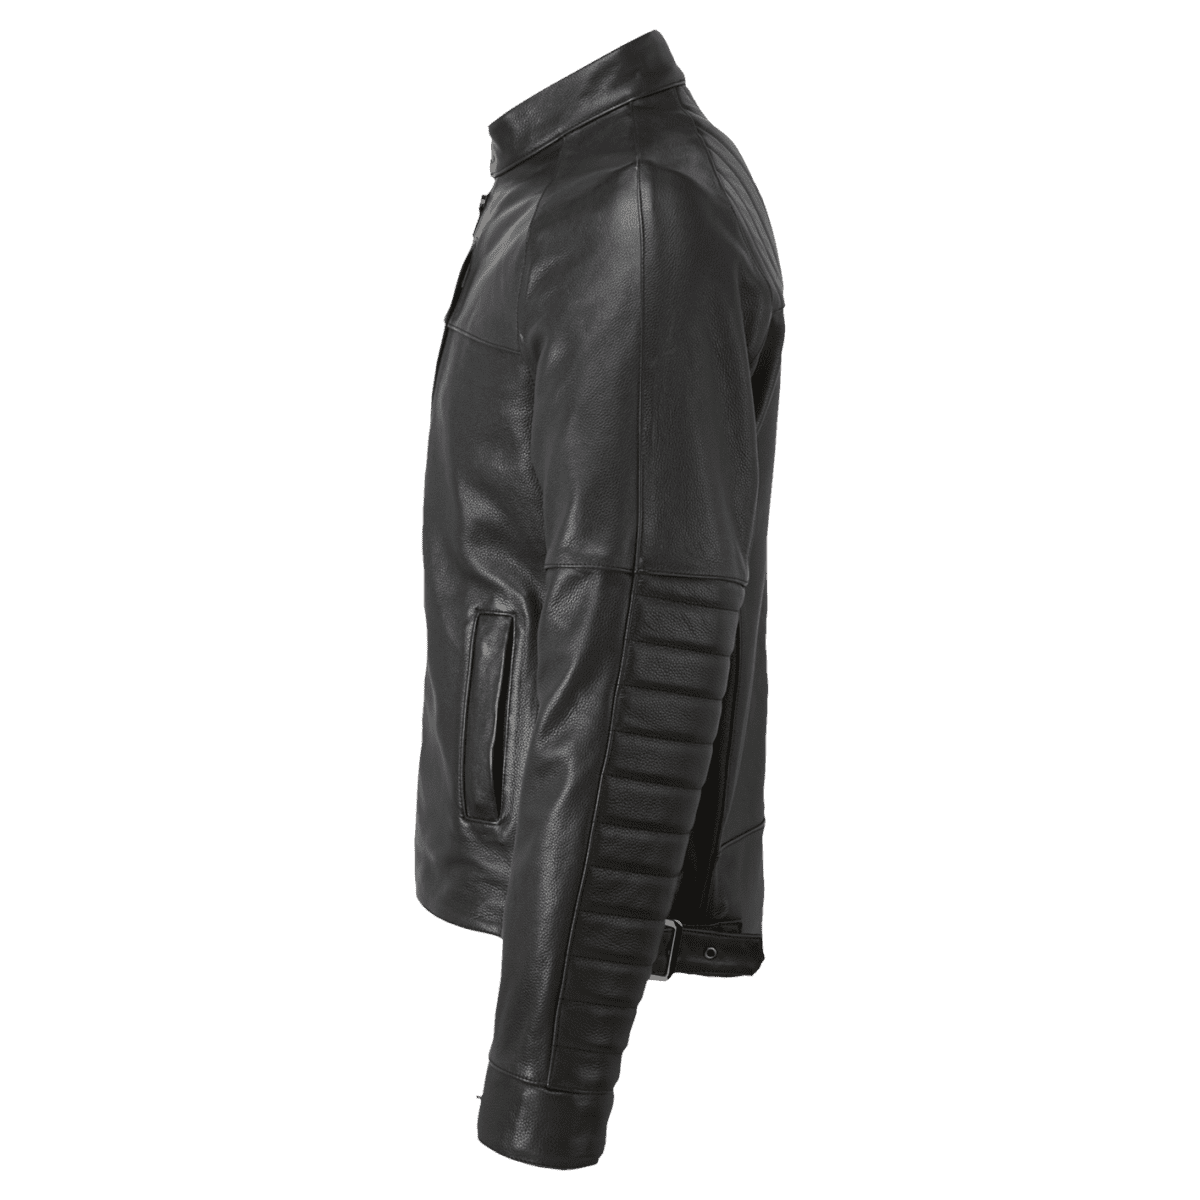 006_knox_mens_leather_side